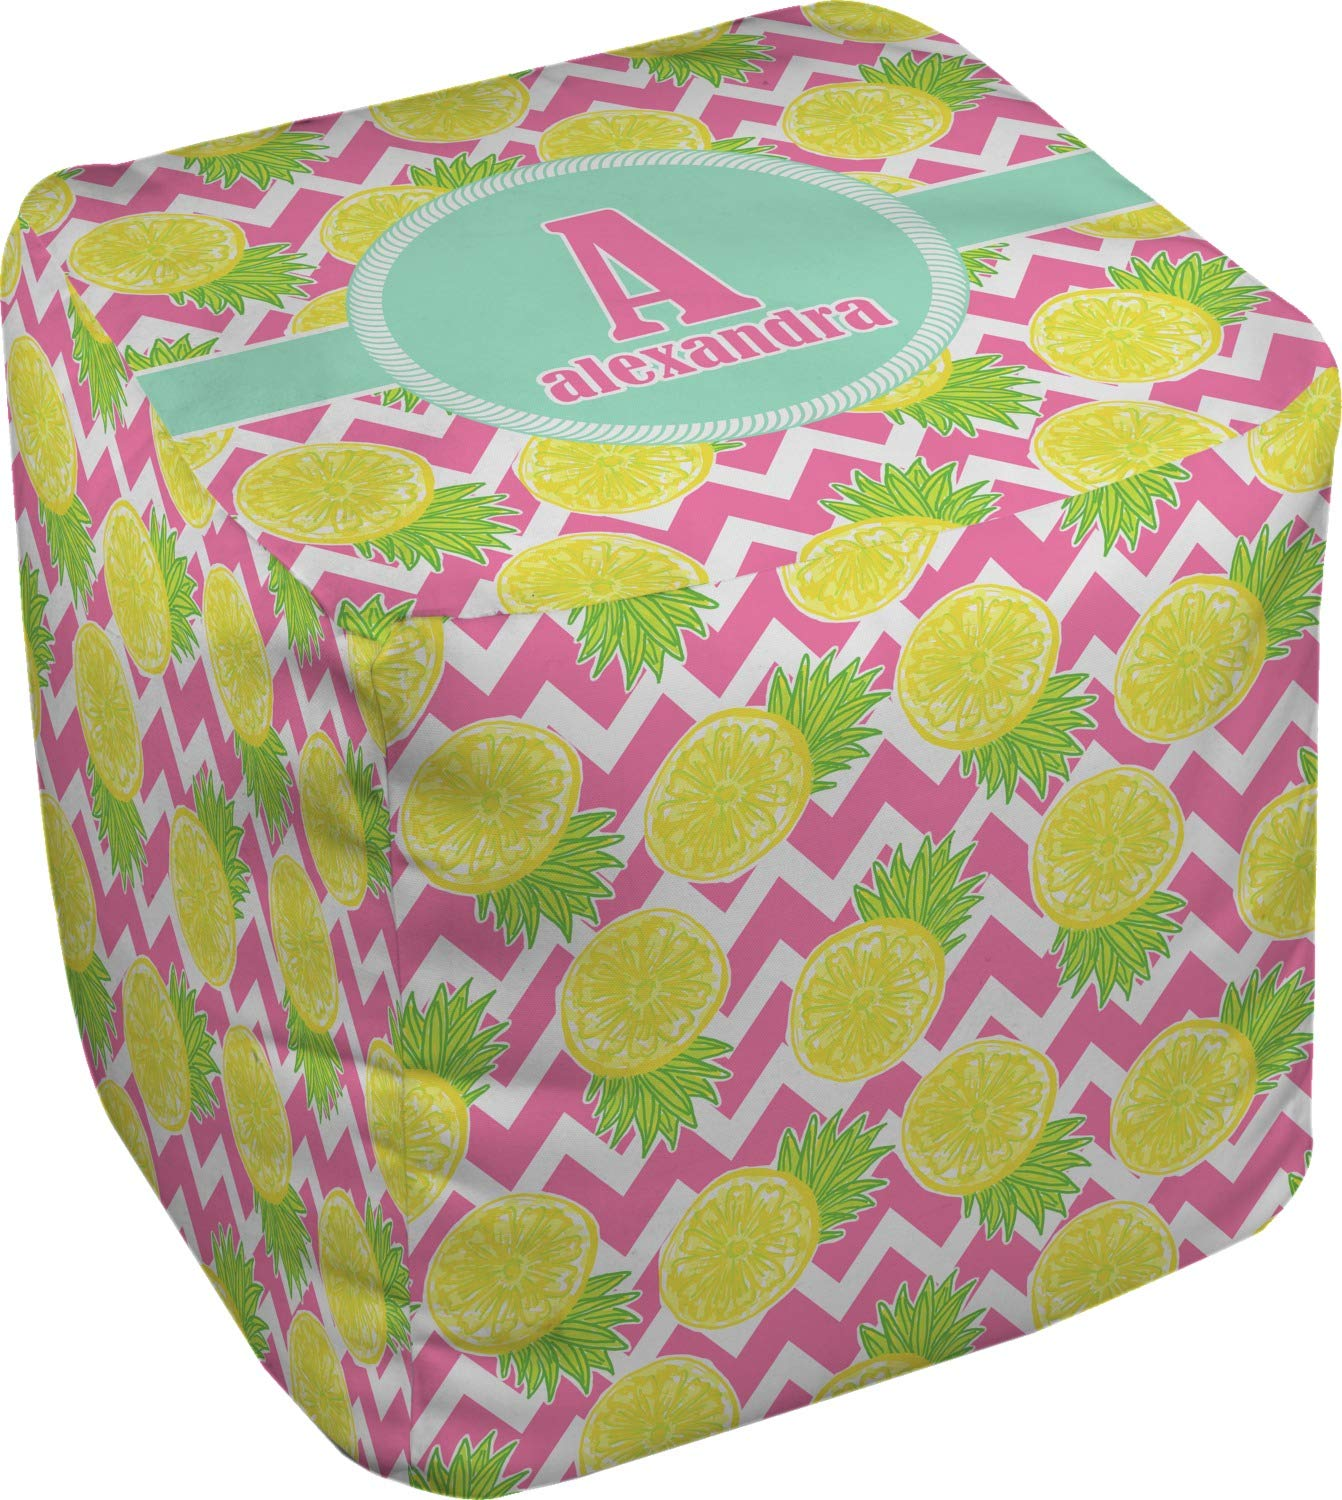 RNK Shops Pineapples Cube Pouf Ottoman - 13'' (Personalized)